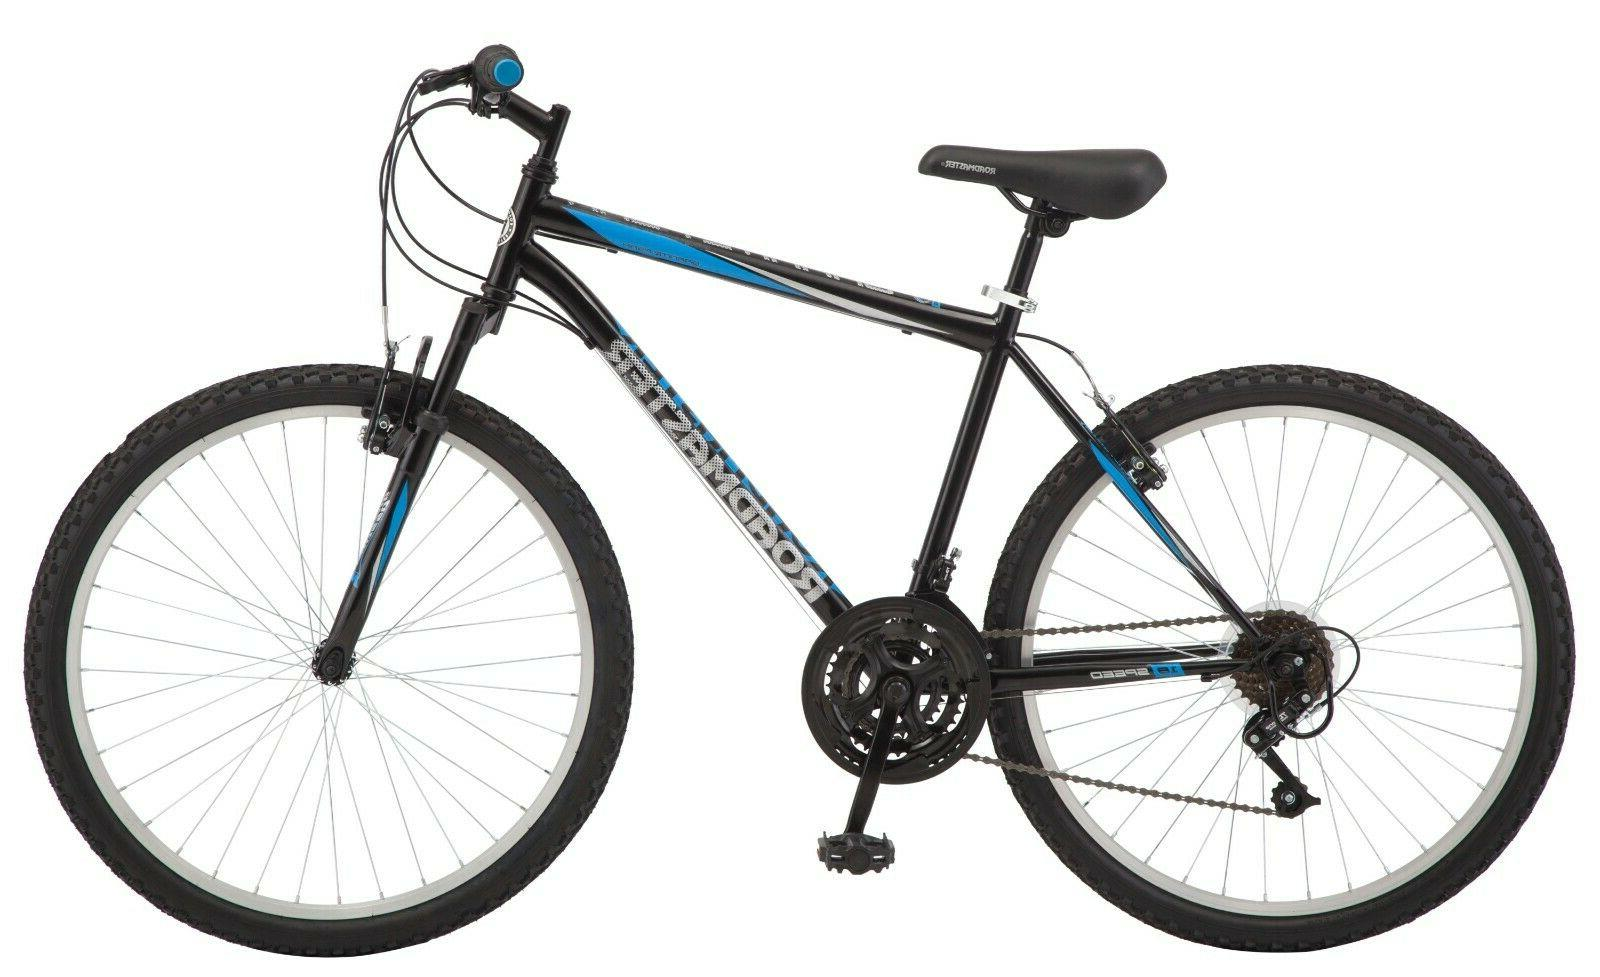 "Roadmaster Granite Peak Men's Mountain Bike 26"" Wheels - Bla"